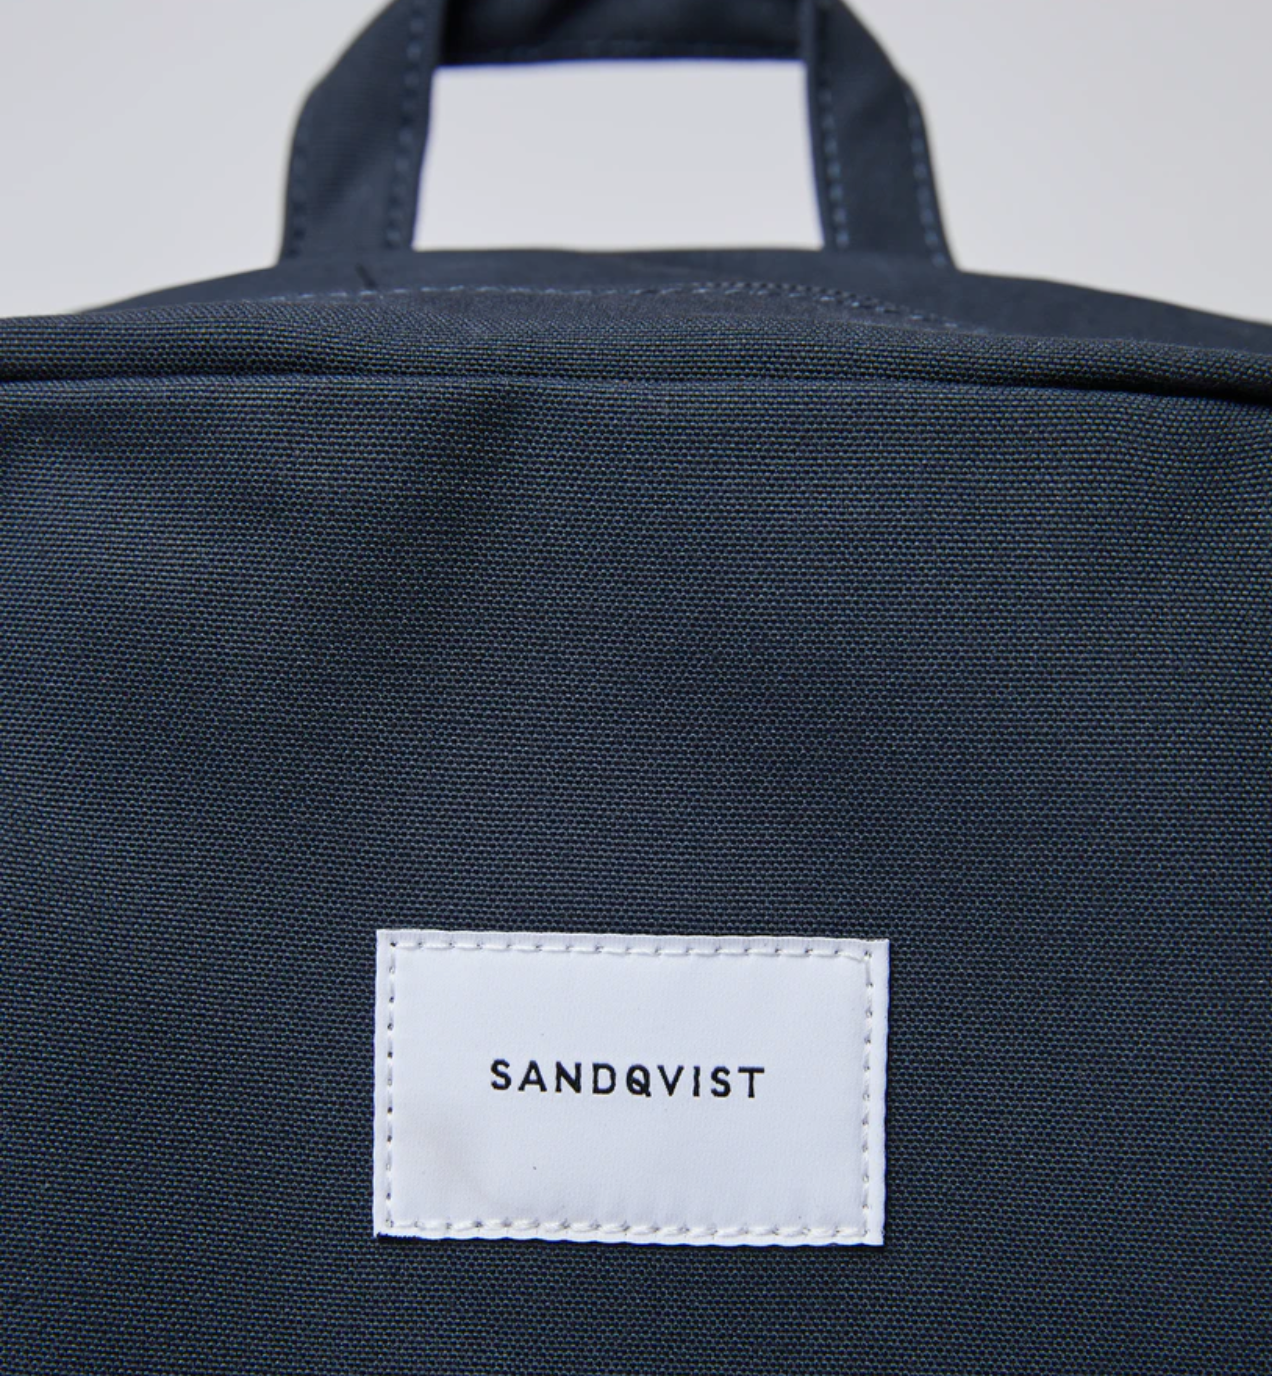 sandqvist kim backpack navy blue zippered bag laptop case